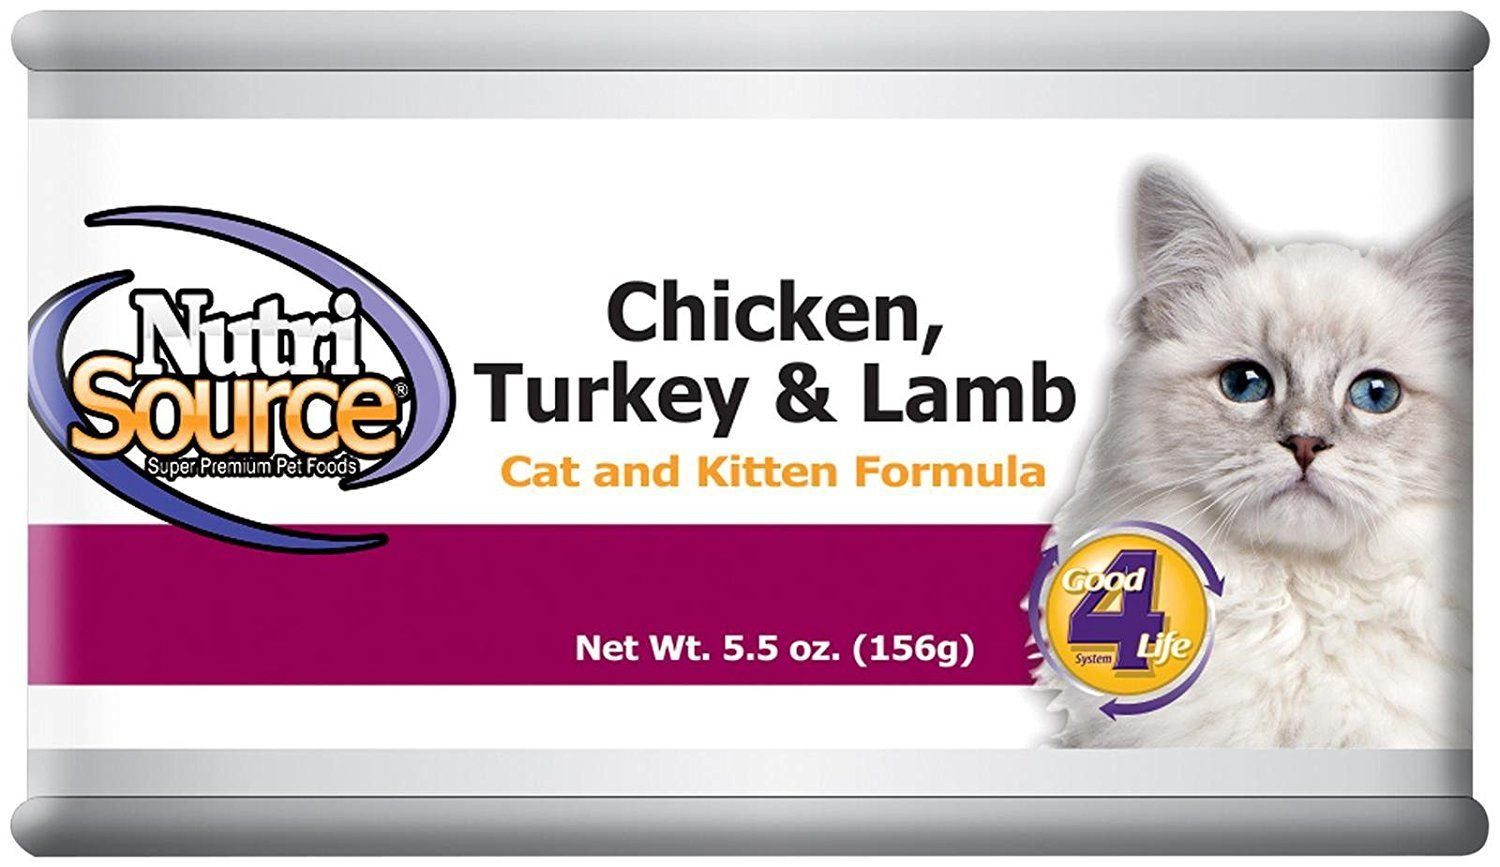 Nutri Source Cat and Kitten Canned Food 12 x 5 oz